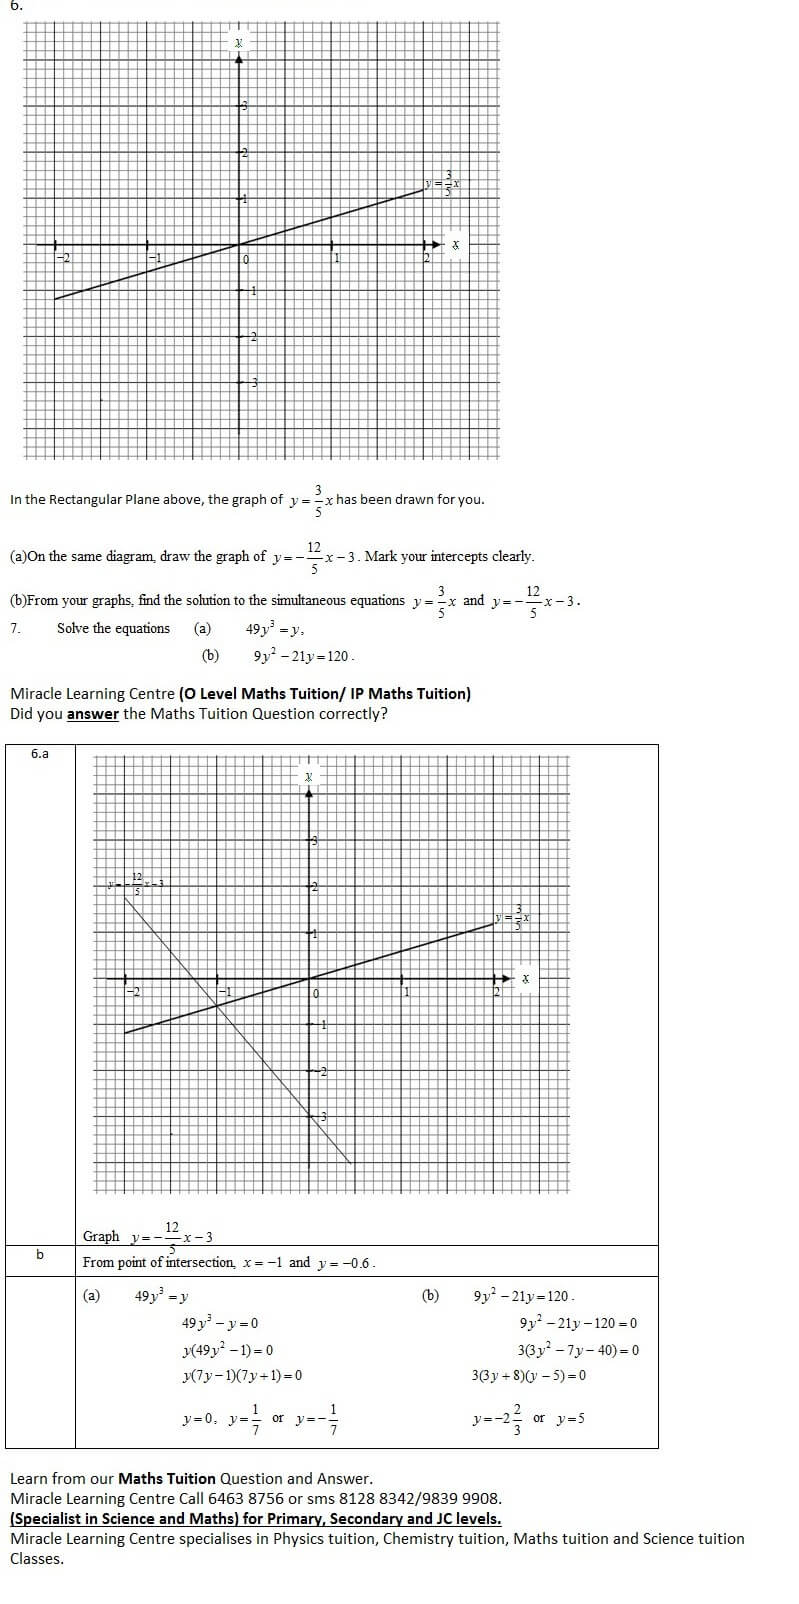 maths_tuition_q